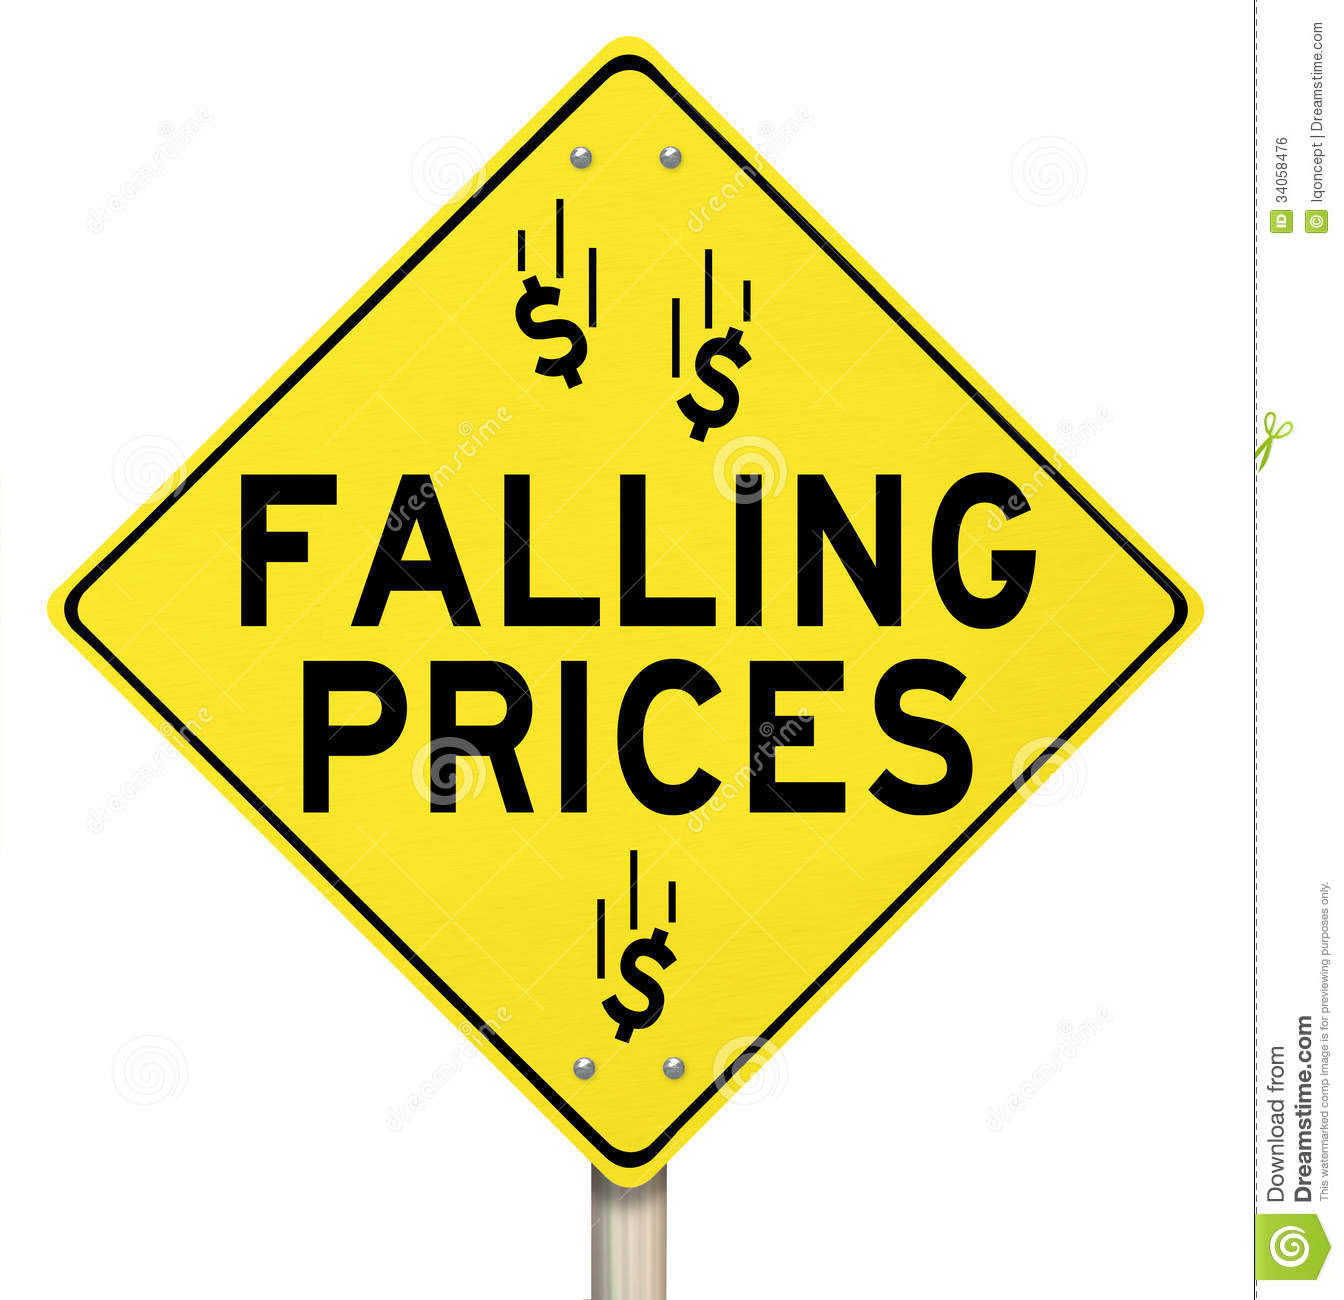 Falling Prices Clipart.